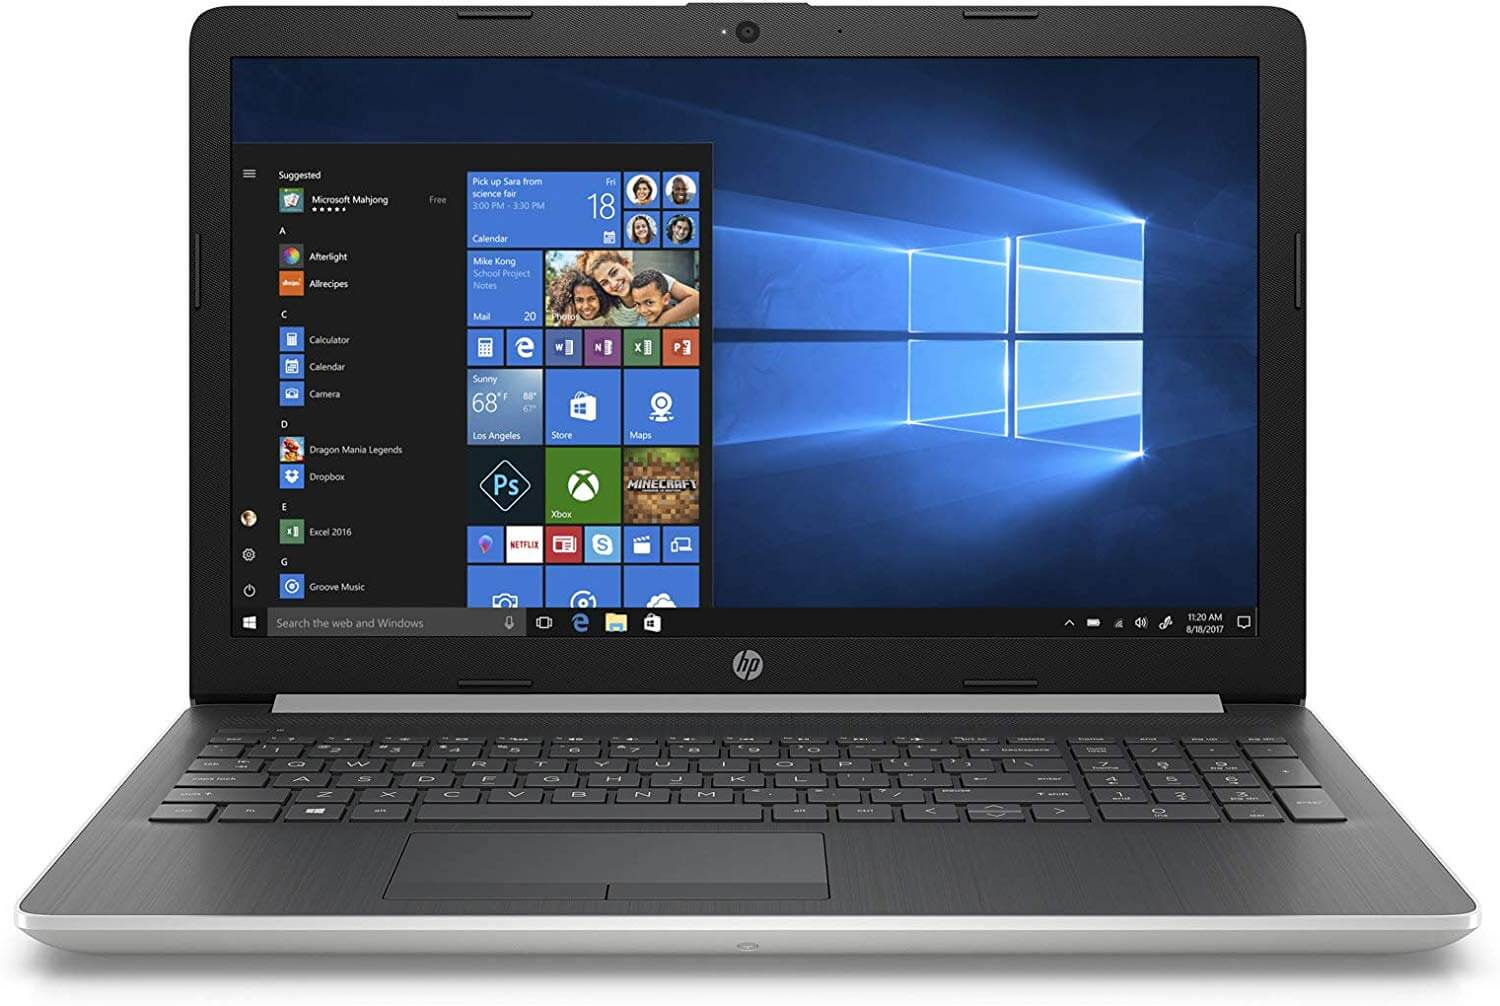 HP 15-da1002ne Notebook Laptop With 15.6-Inch Display, Core i3 Processor/4GB RAM/1TB HDD/Intel UHD Graphics 620 With English/Arabic Keyboard Silver